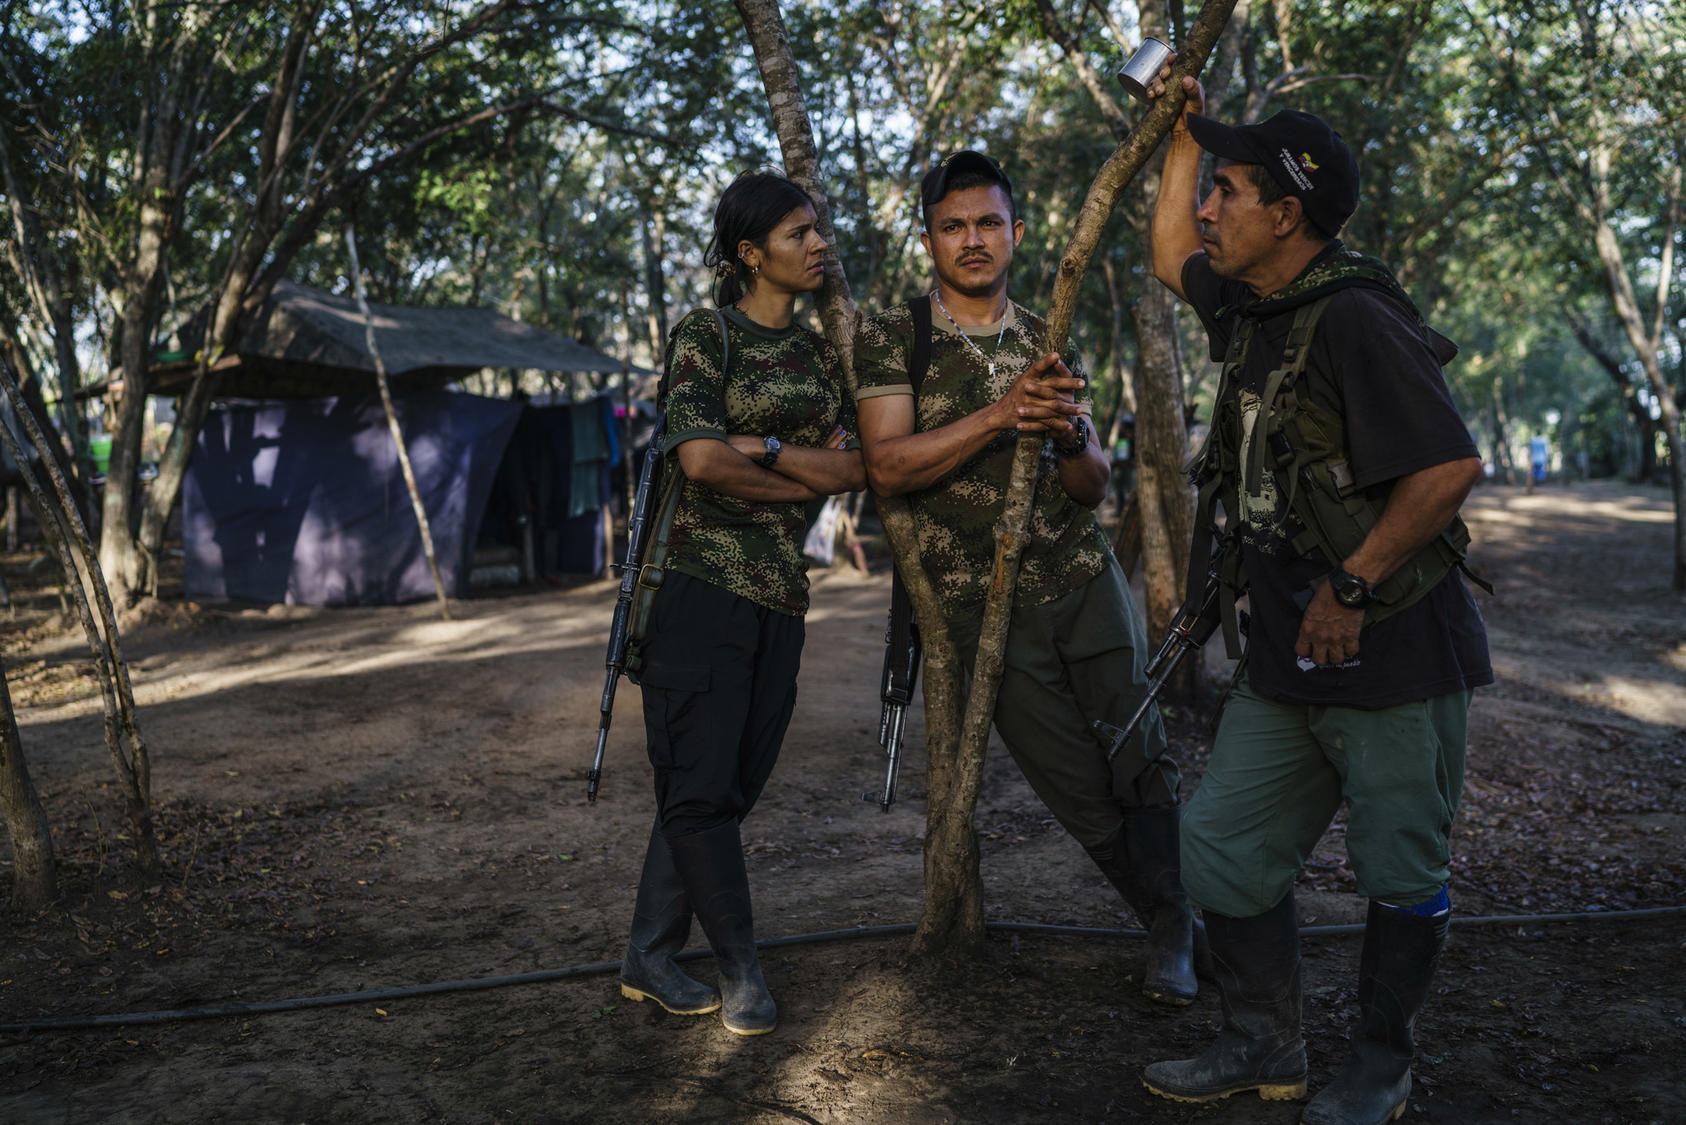 FARC members discuss their future in one of the zones set up to transition the former rebels back to civilian life, near La Paz, Colombia, Feb. 1, 2017. Photo Courtesy of The New York Times/Federico Rios Escobar